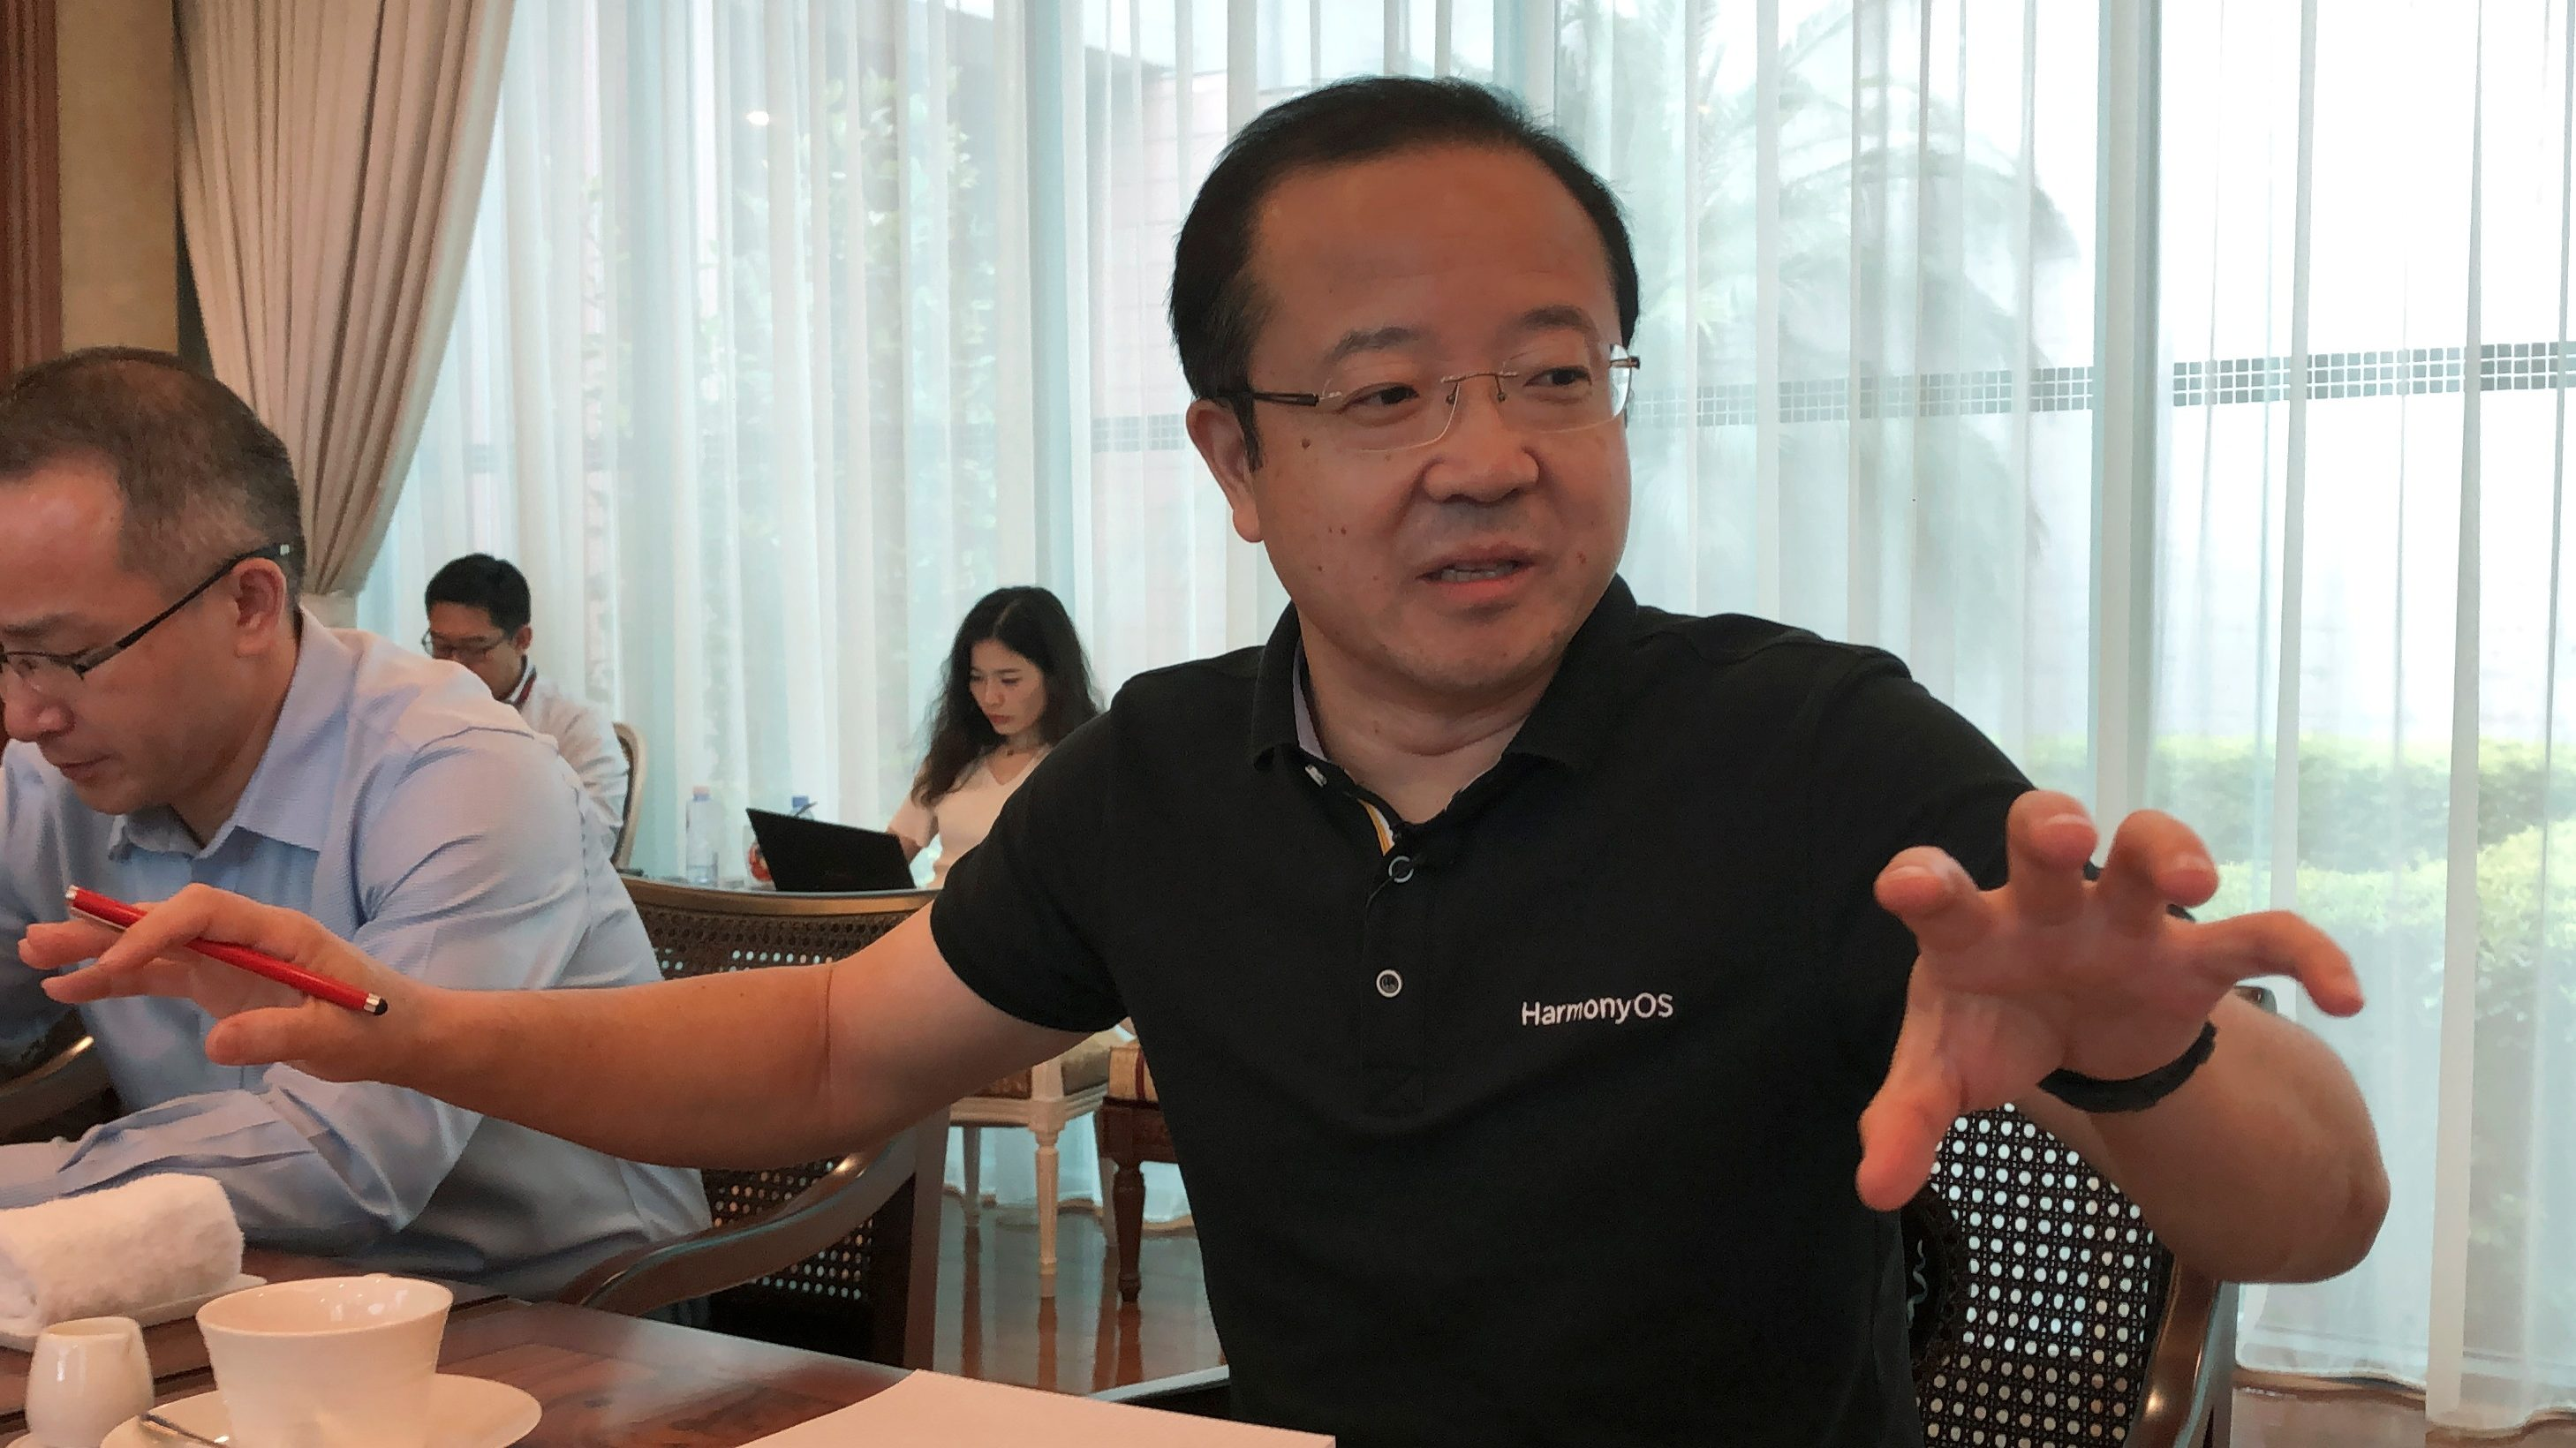 Wang Chenglu, president of Huawei Consumer Business Group's Software Department, talks about the HarmonyOS operating system during a media roundtable at the Huawei headquarters in Shenzhen